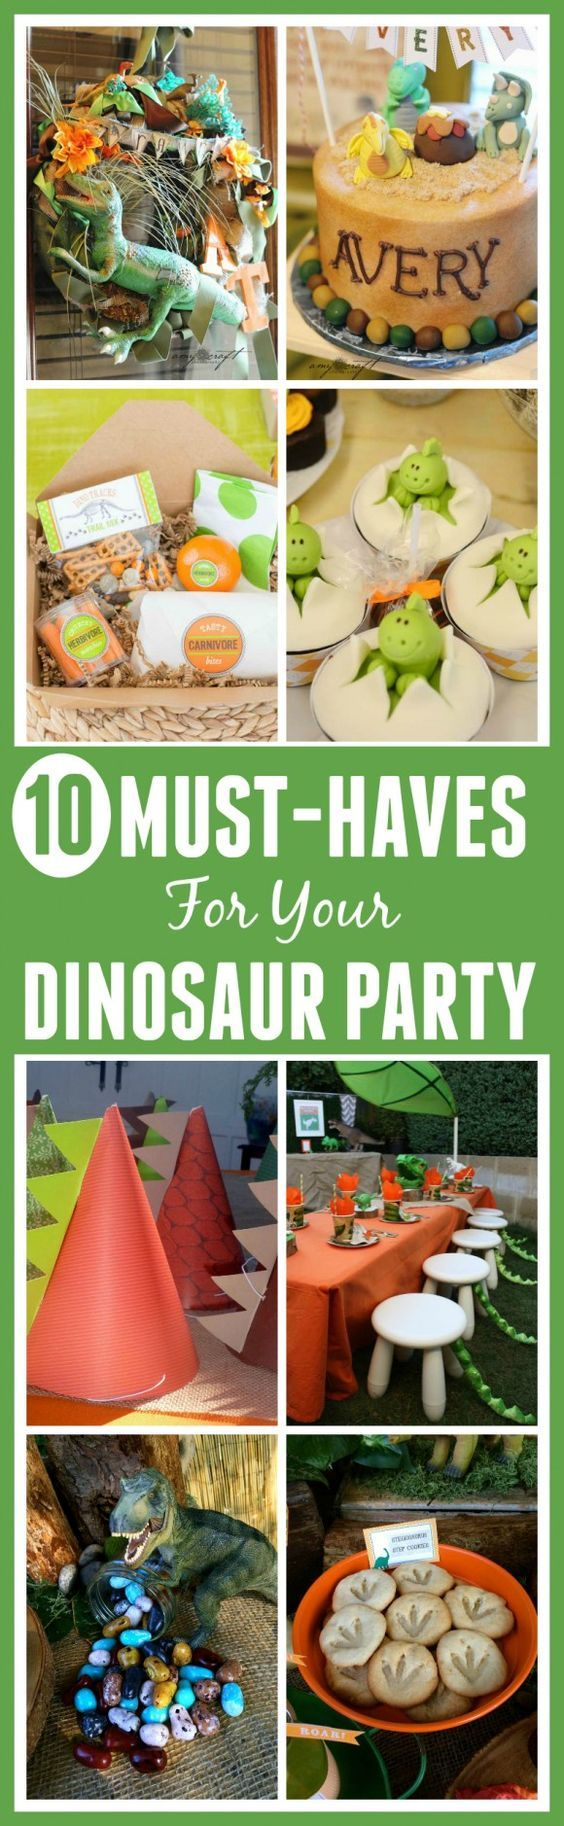 Here are 10 must-haves for throwing a dinosaur birthday party! We've got ideas for dinosaur cakes, cupcakes, party favors, decorations, party foods, and more! See more dinosaur party planning ideas at CatchMyParty.com.